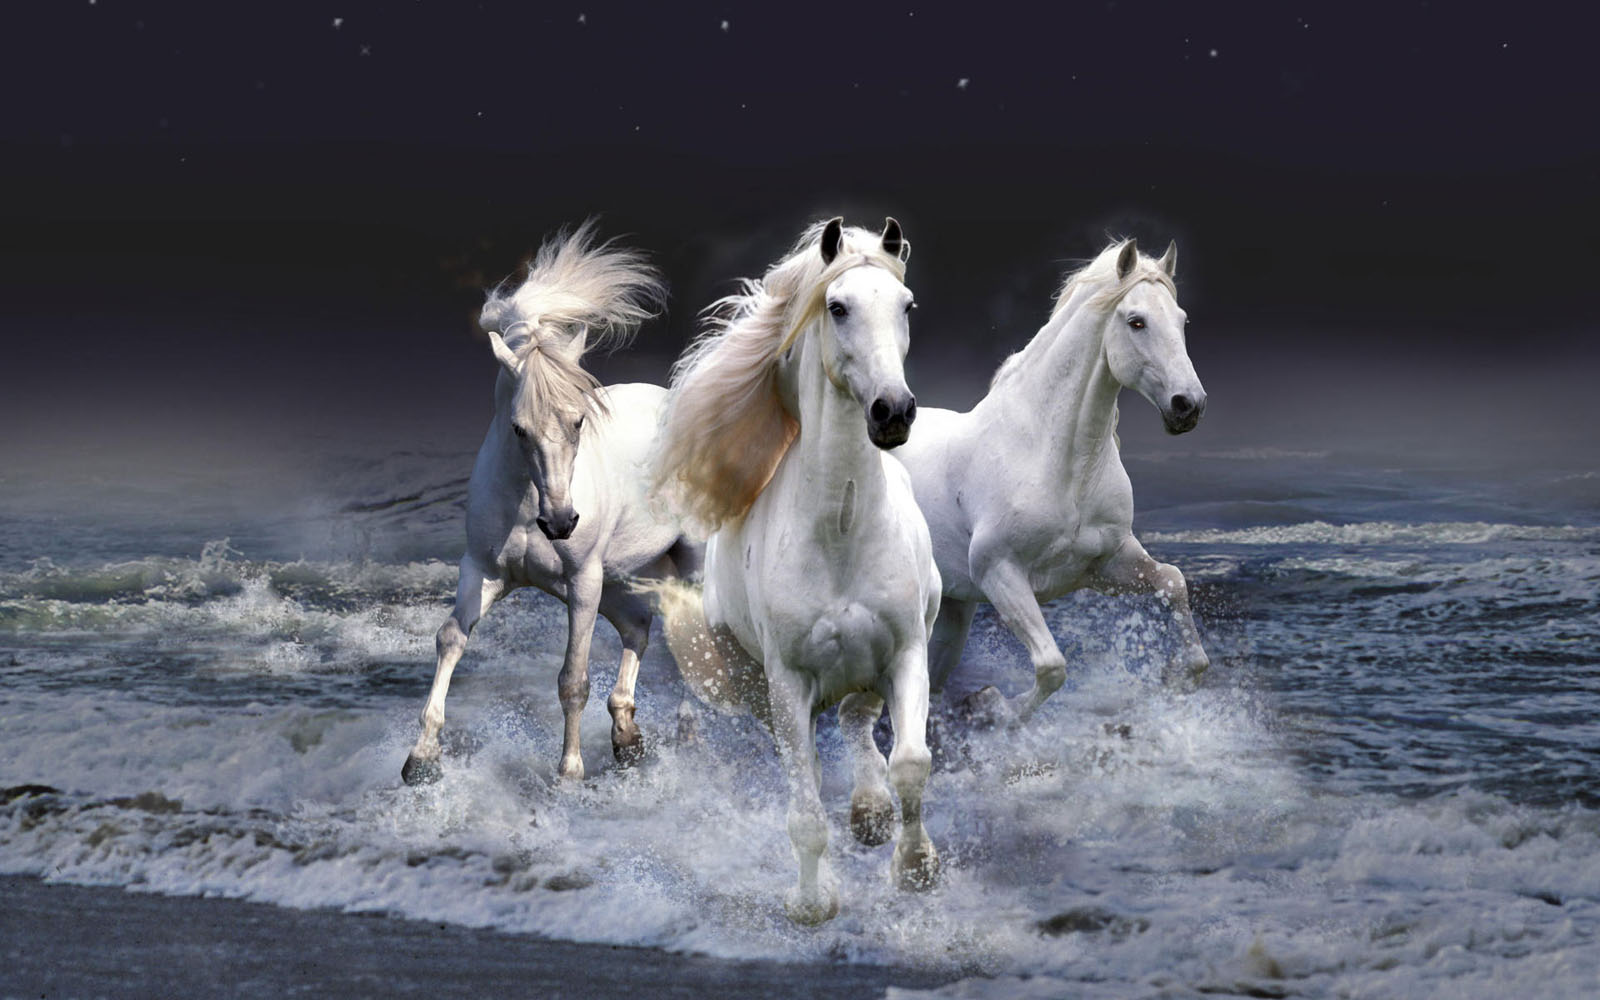 Must see   Wallpaper Horse Purple - Horses+Wallpapers+%25285%2529  Pictures_74576.jpg